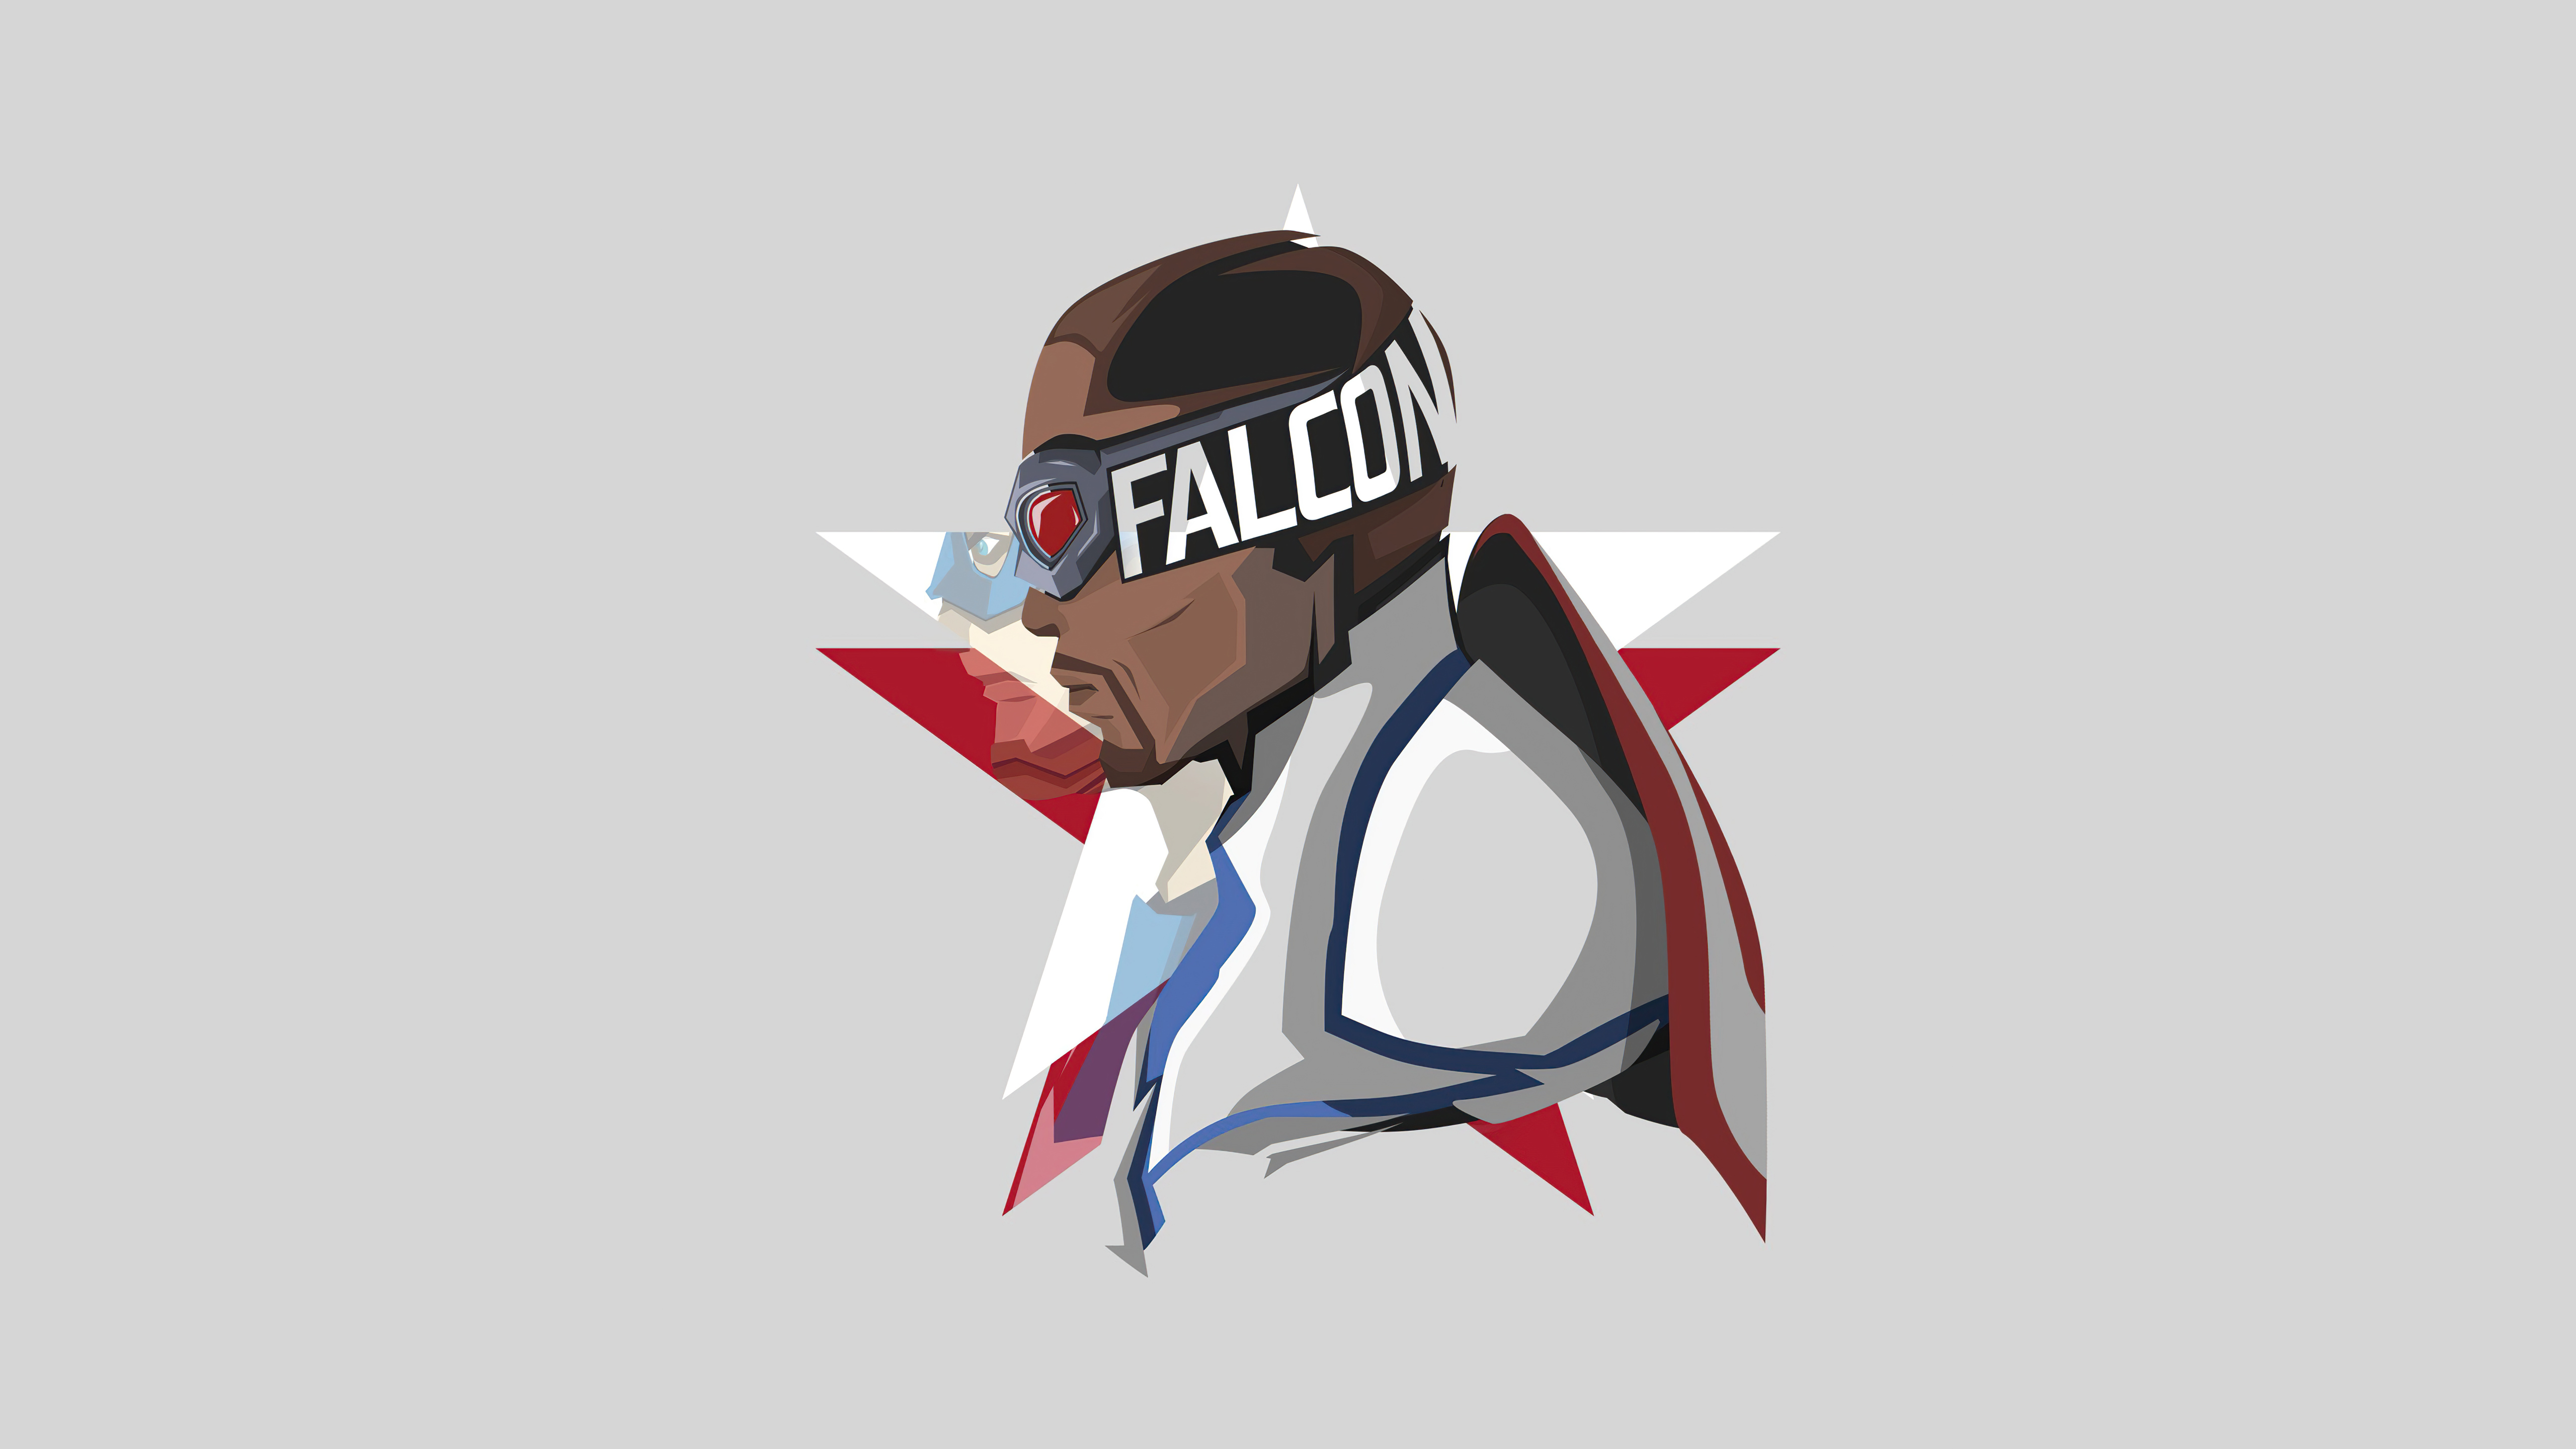 Wallpaper The Falcon and the winter soldier Minimalist style